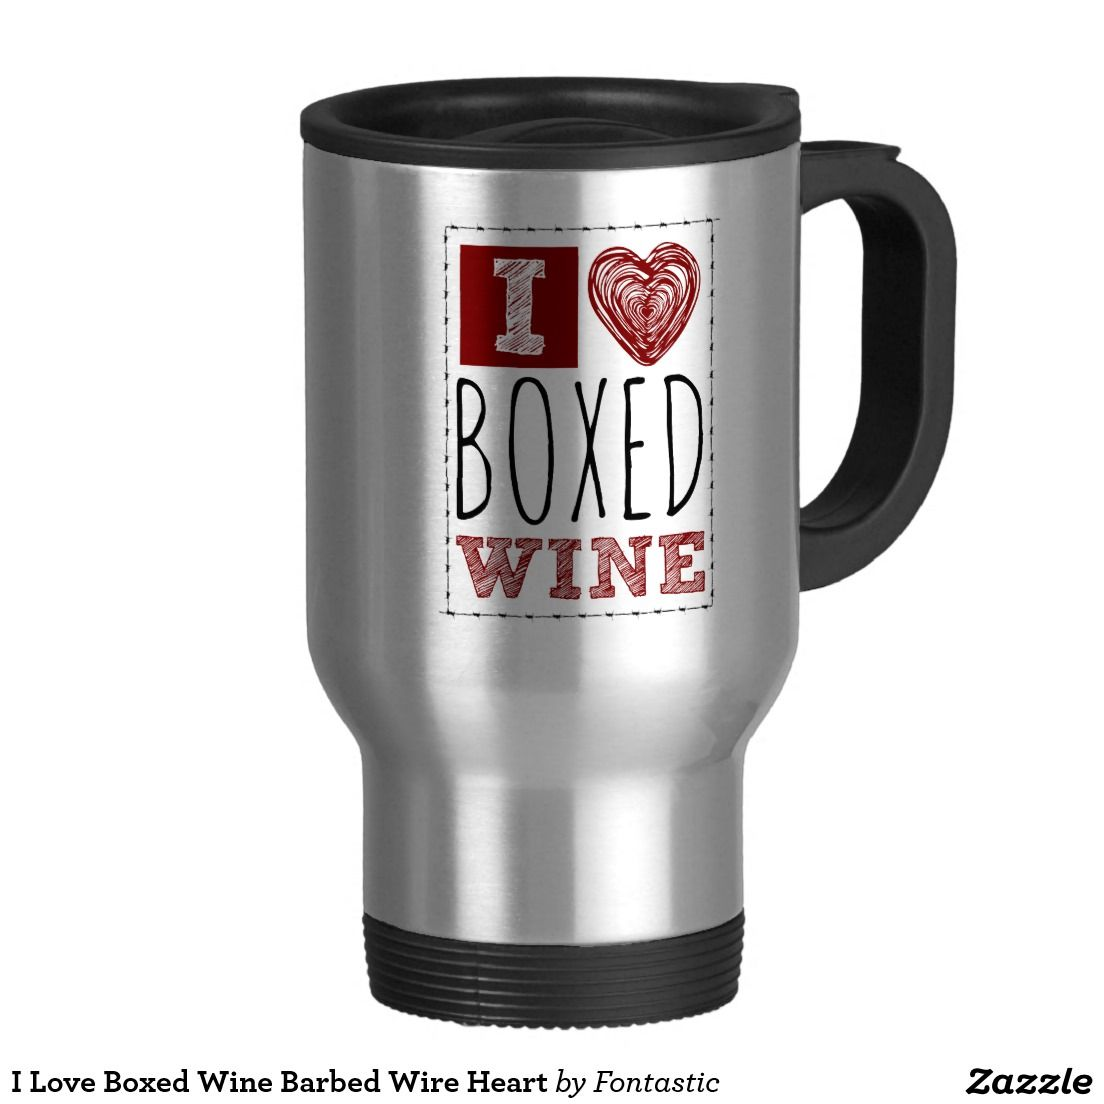 I Love Boxed Wine Barbed Wire Heart 15-oz Stainless Steel Travel Mug ...